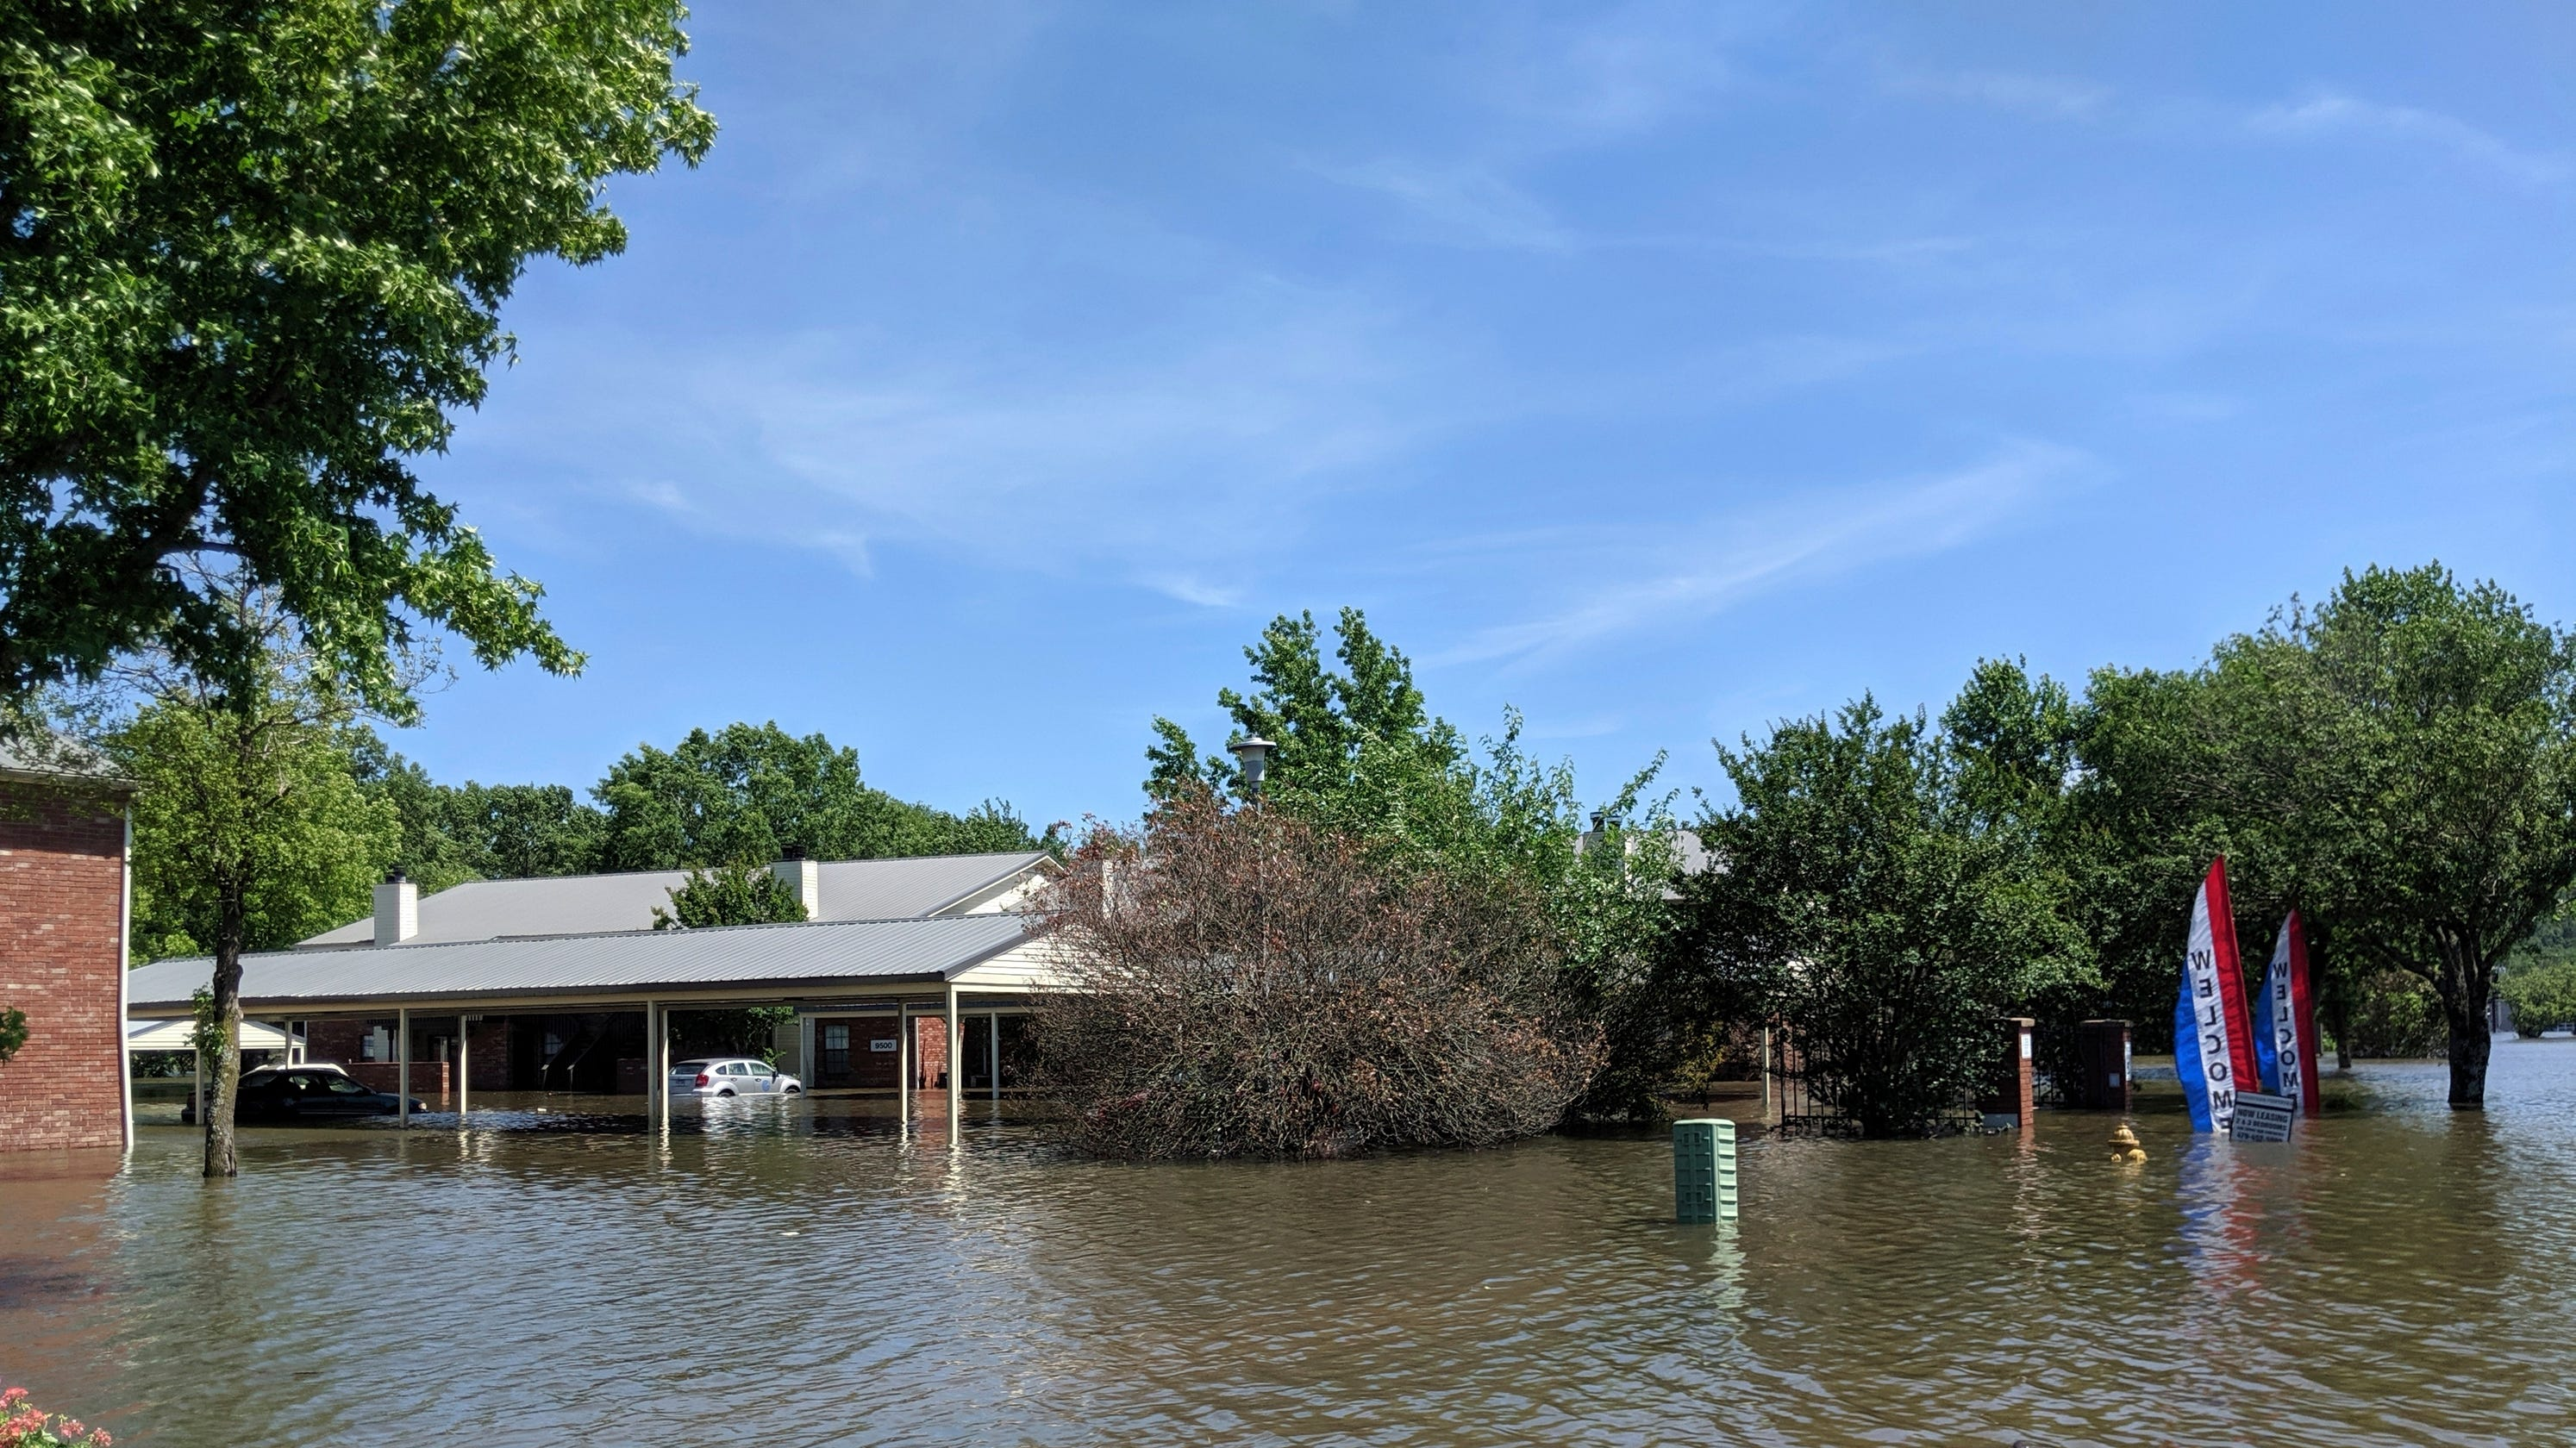 Arkansas flooding: Levee breach prompts Holla Bend evacuations